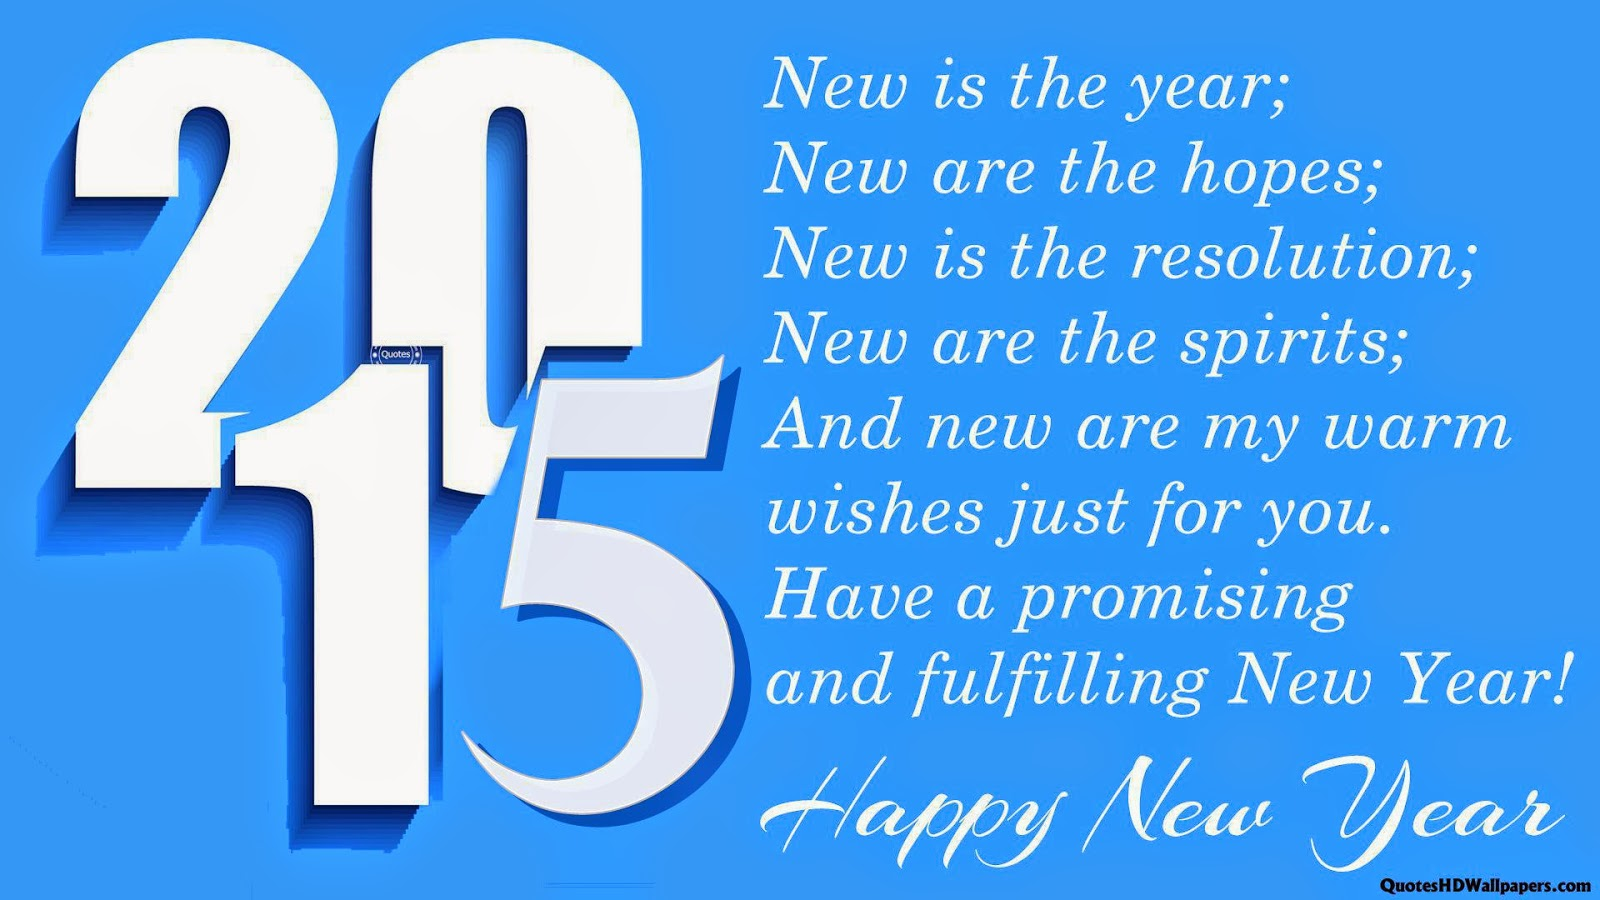 Happy New Year 2015 Wallpapers Quotes